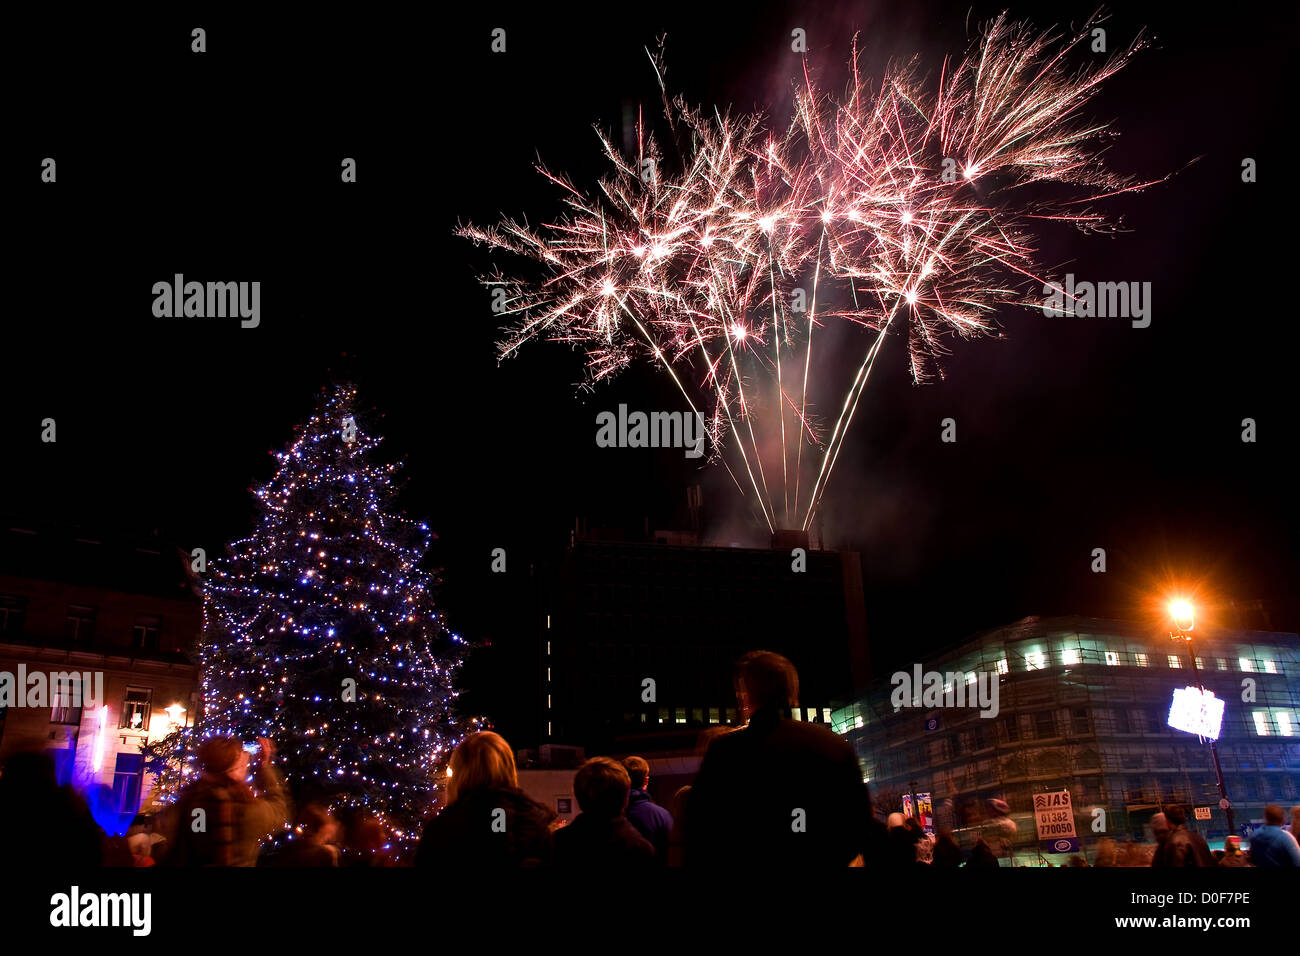 Crowds of people watching the fireworks exploding into the night sky during the Christmas Tree Lights switch on - Stock Image